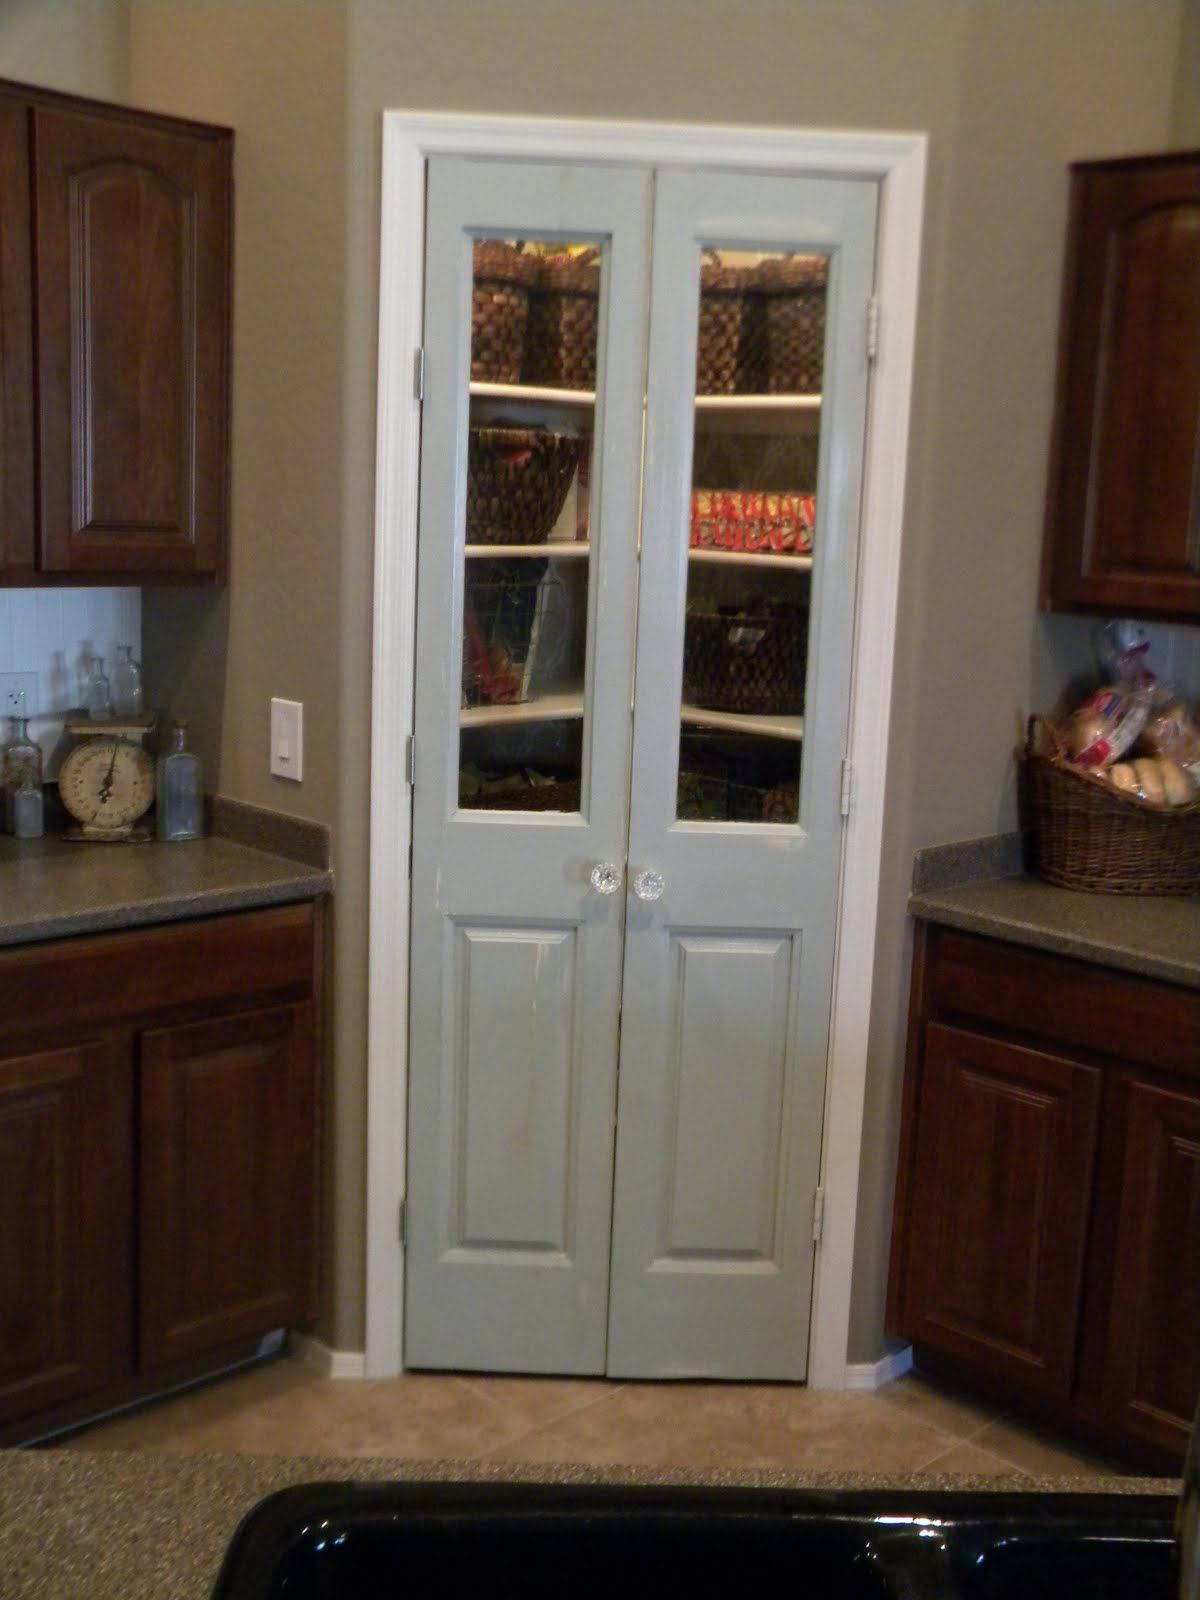 Grand Design: Back Splash And Pantry Project